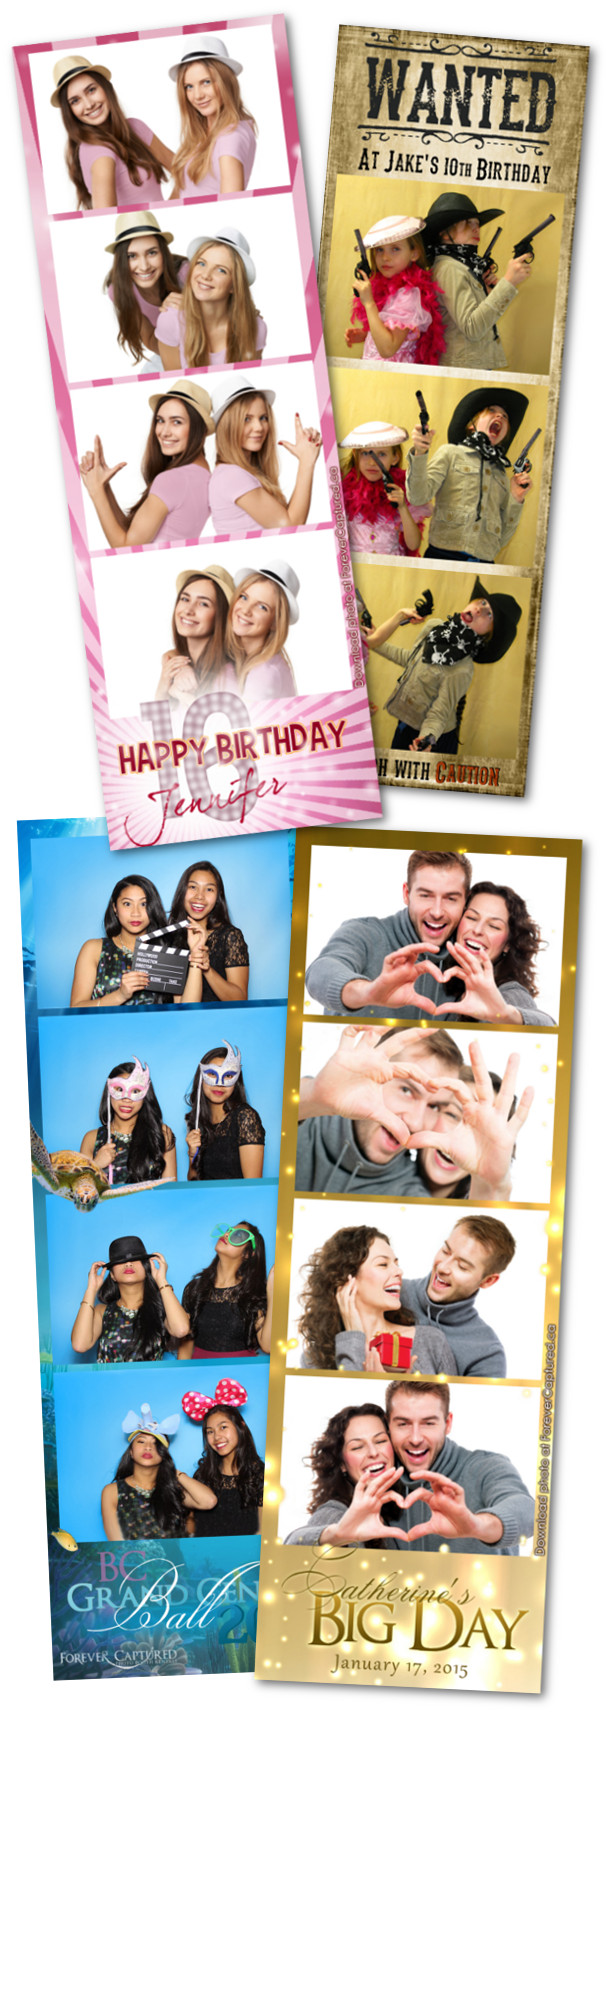 Photobooth rentals for parties, weddings, and events in BC.